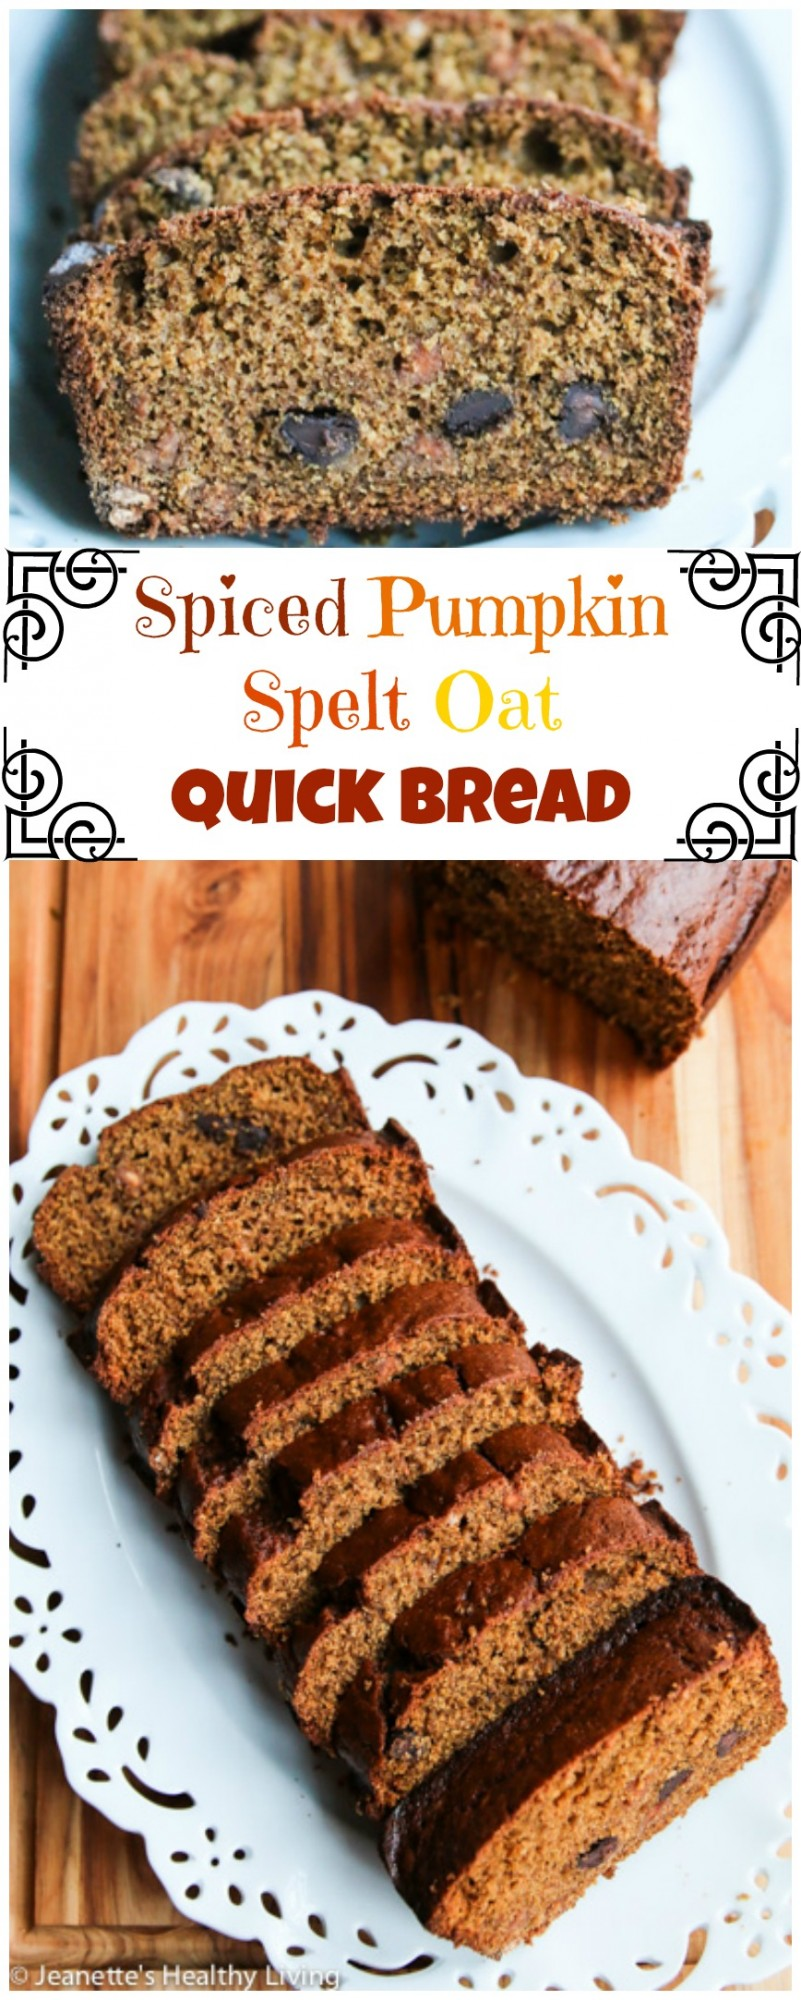 Spiced Pumpkin Spelt Oat Quick Bread - perfect for breakfast or tea, this quick bread is made with whole grain spelt, oat flour and flaxseeds